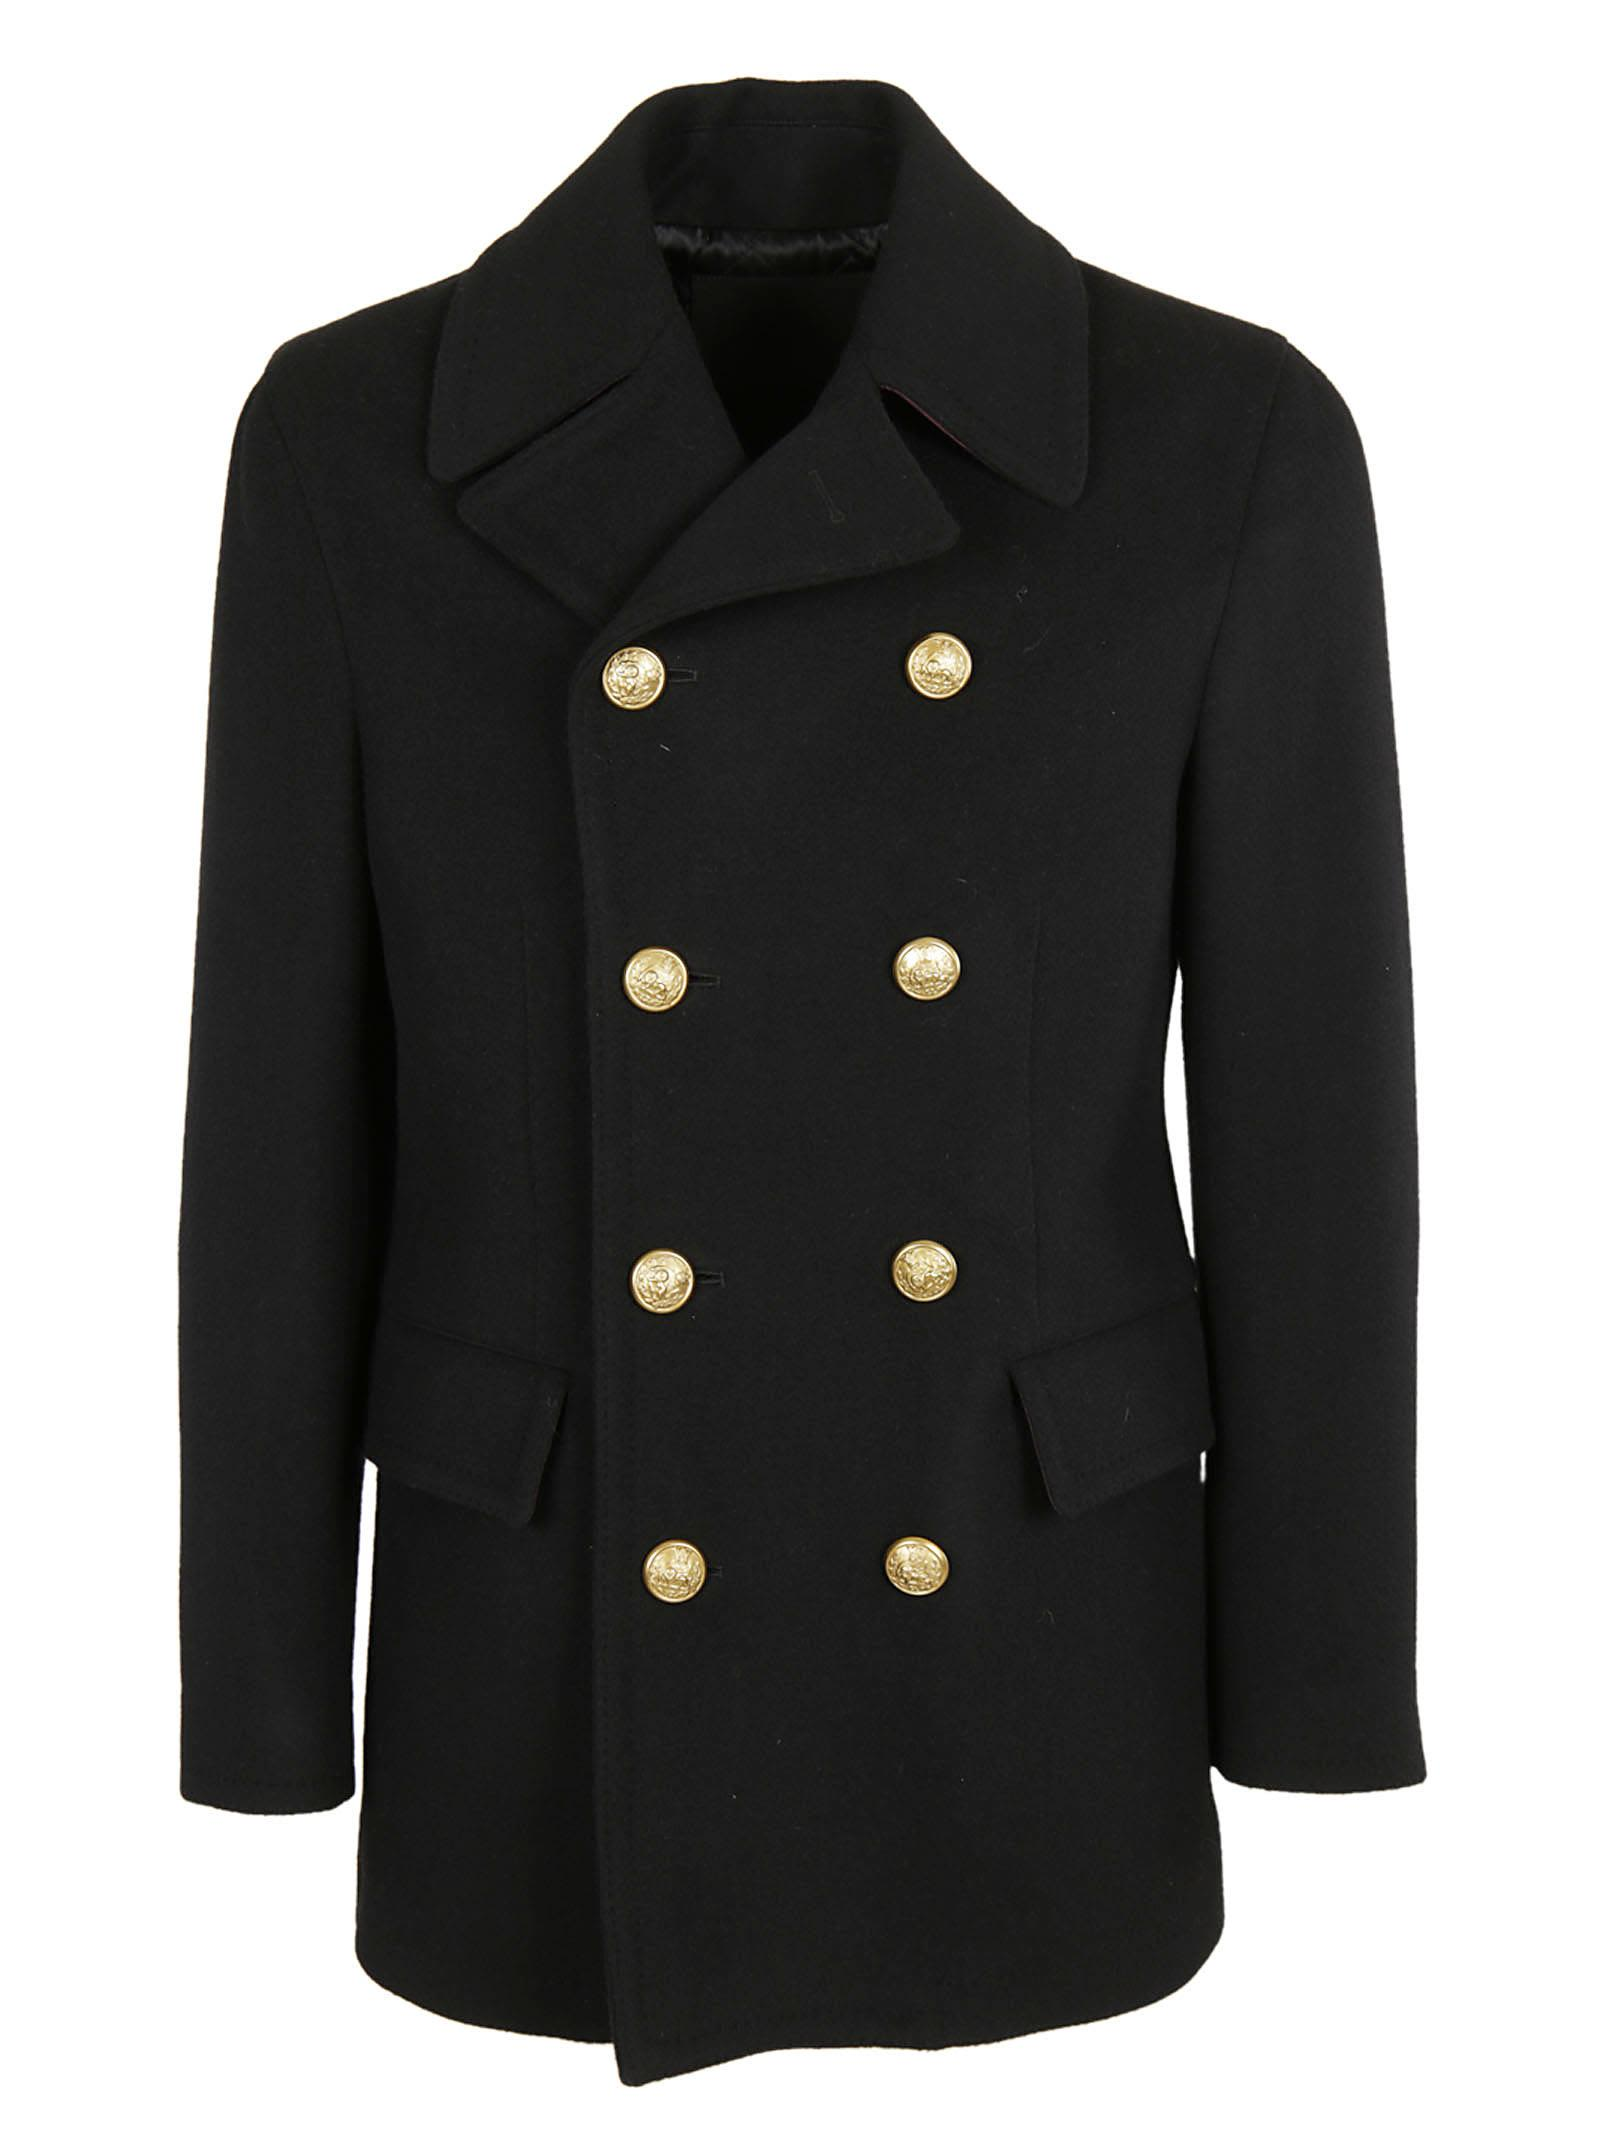 Dolce & Gabbana Military Jacket